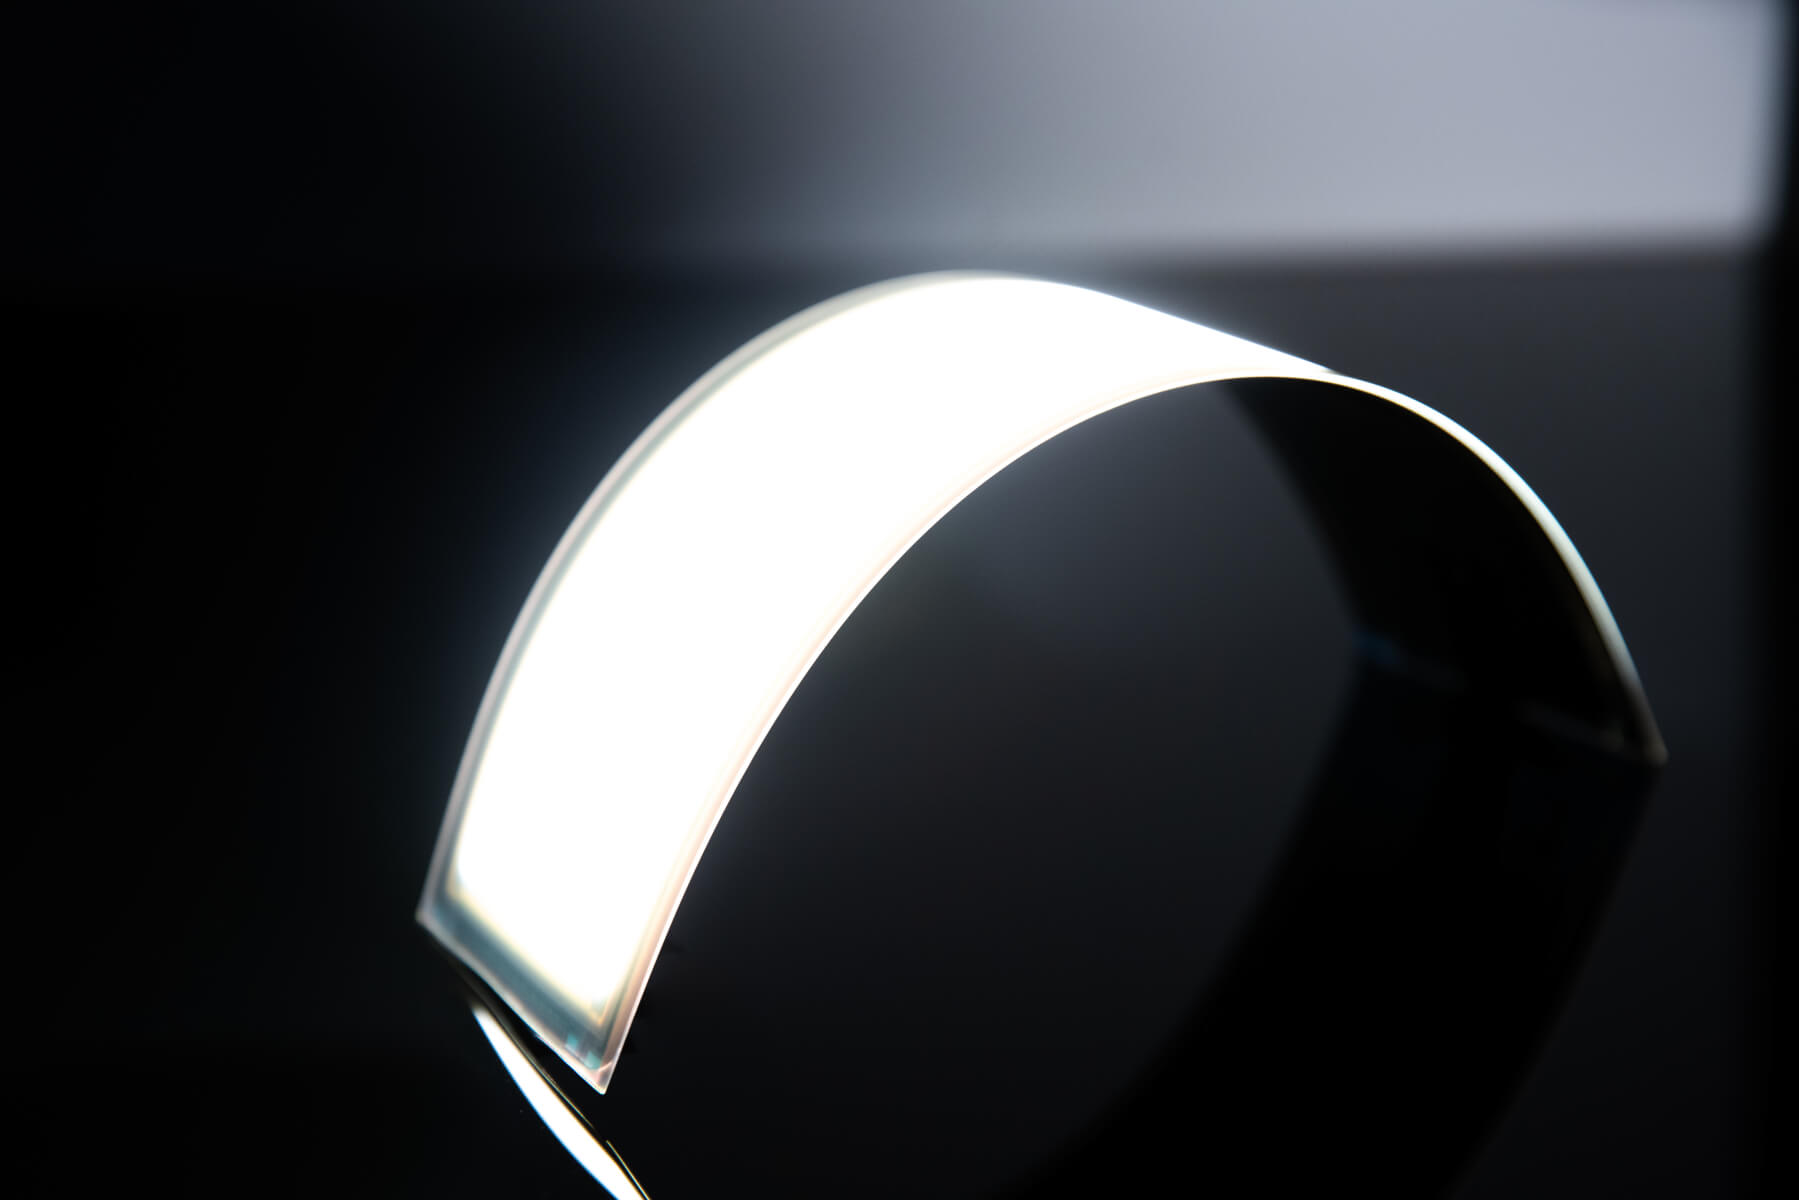 Flexible OLED lighting panel